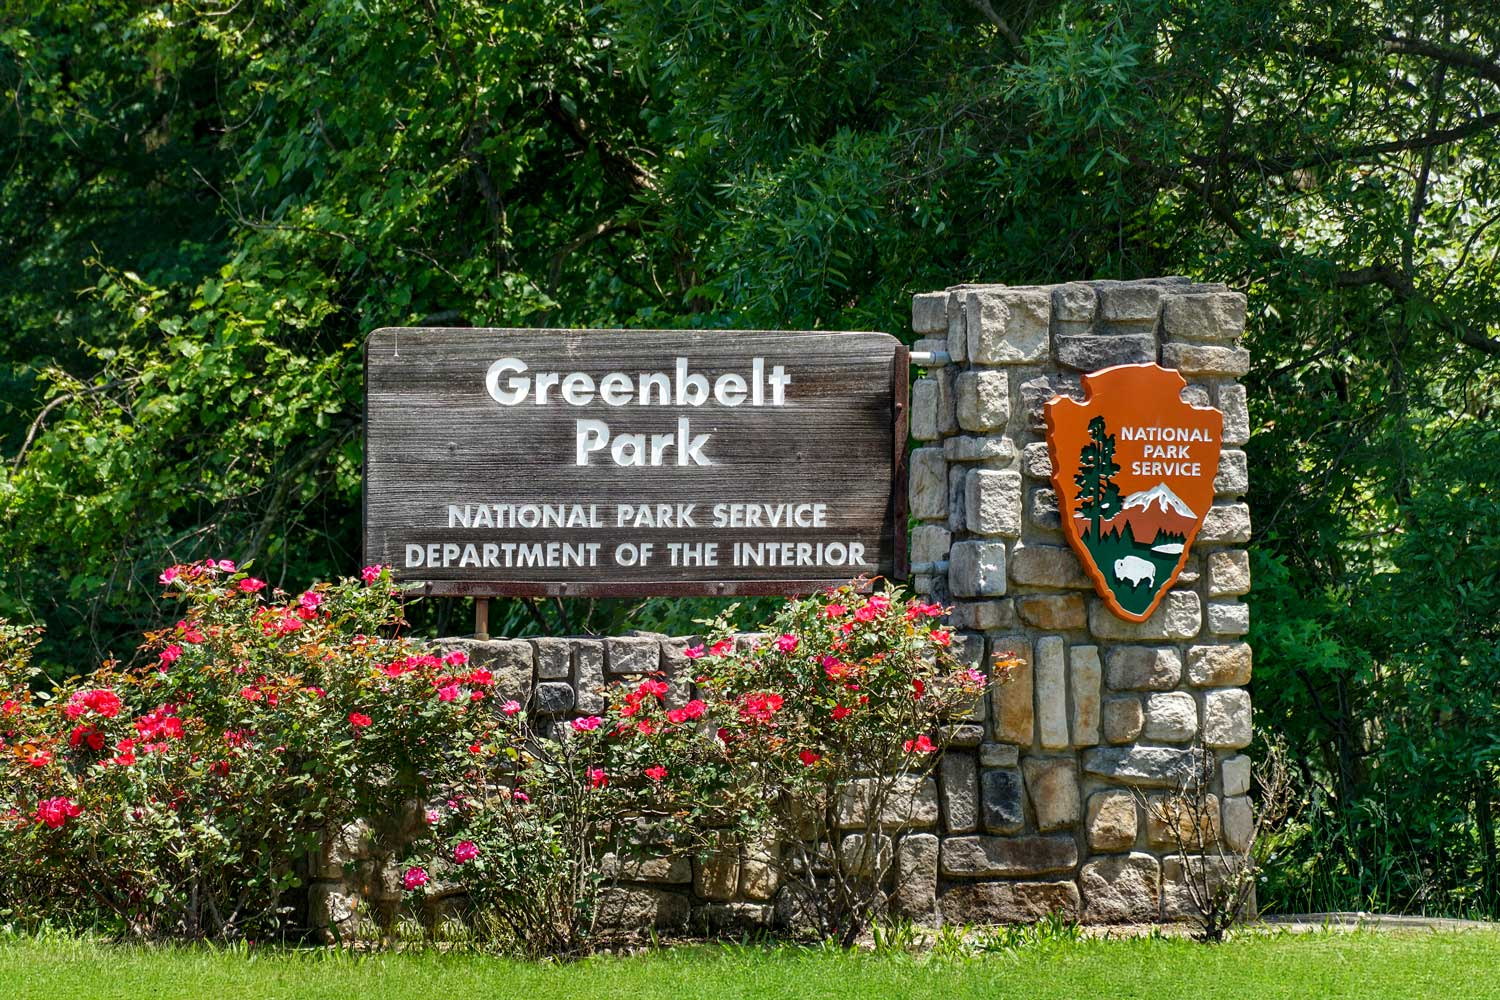 Greenbelt Park is 10 minutes from Heritage Square Apartments in New Carrollton, MD